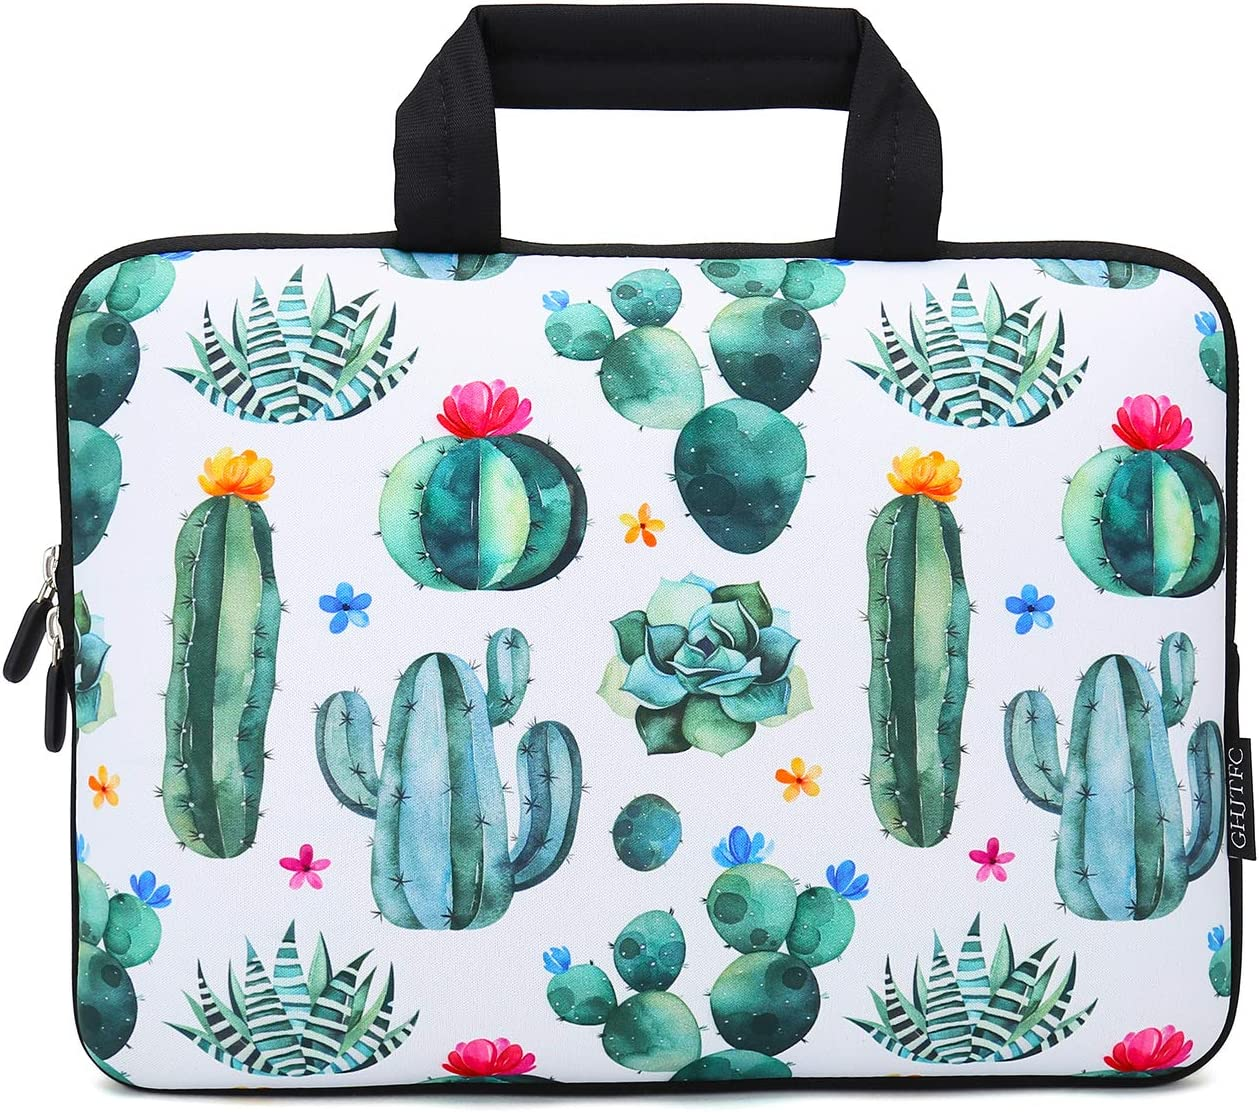 12 Inch Laptop Sleeve Carrying Bag Protective Case Neoprene Sleeve Tote Tablet Cover Notebook Briefcase Bag with Handle for Women Men(Cactus,12